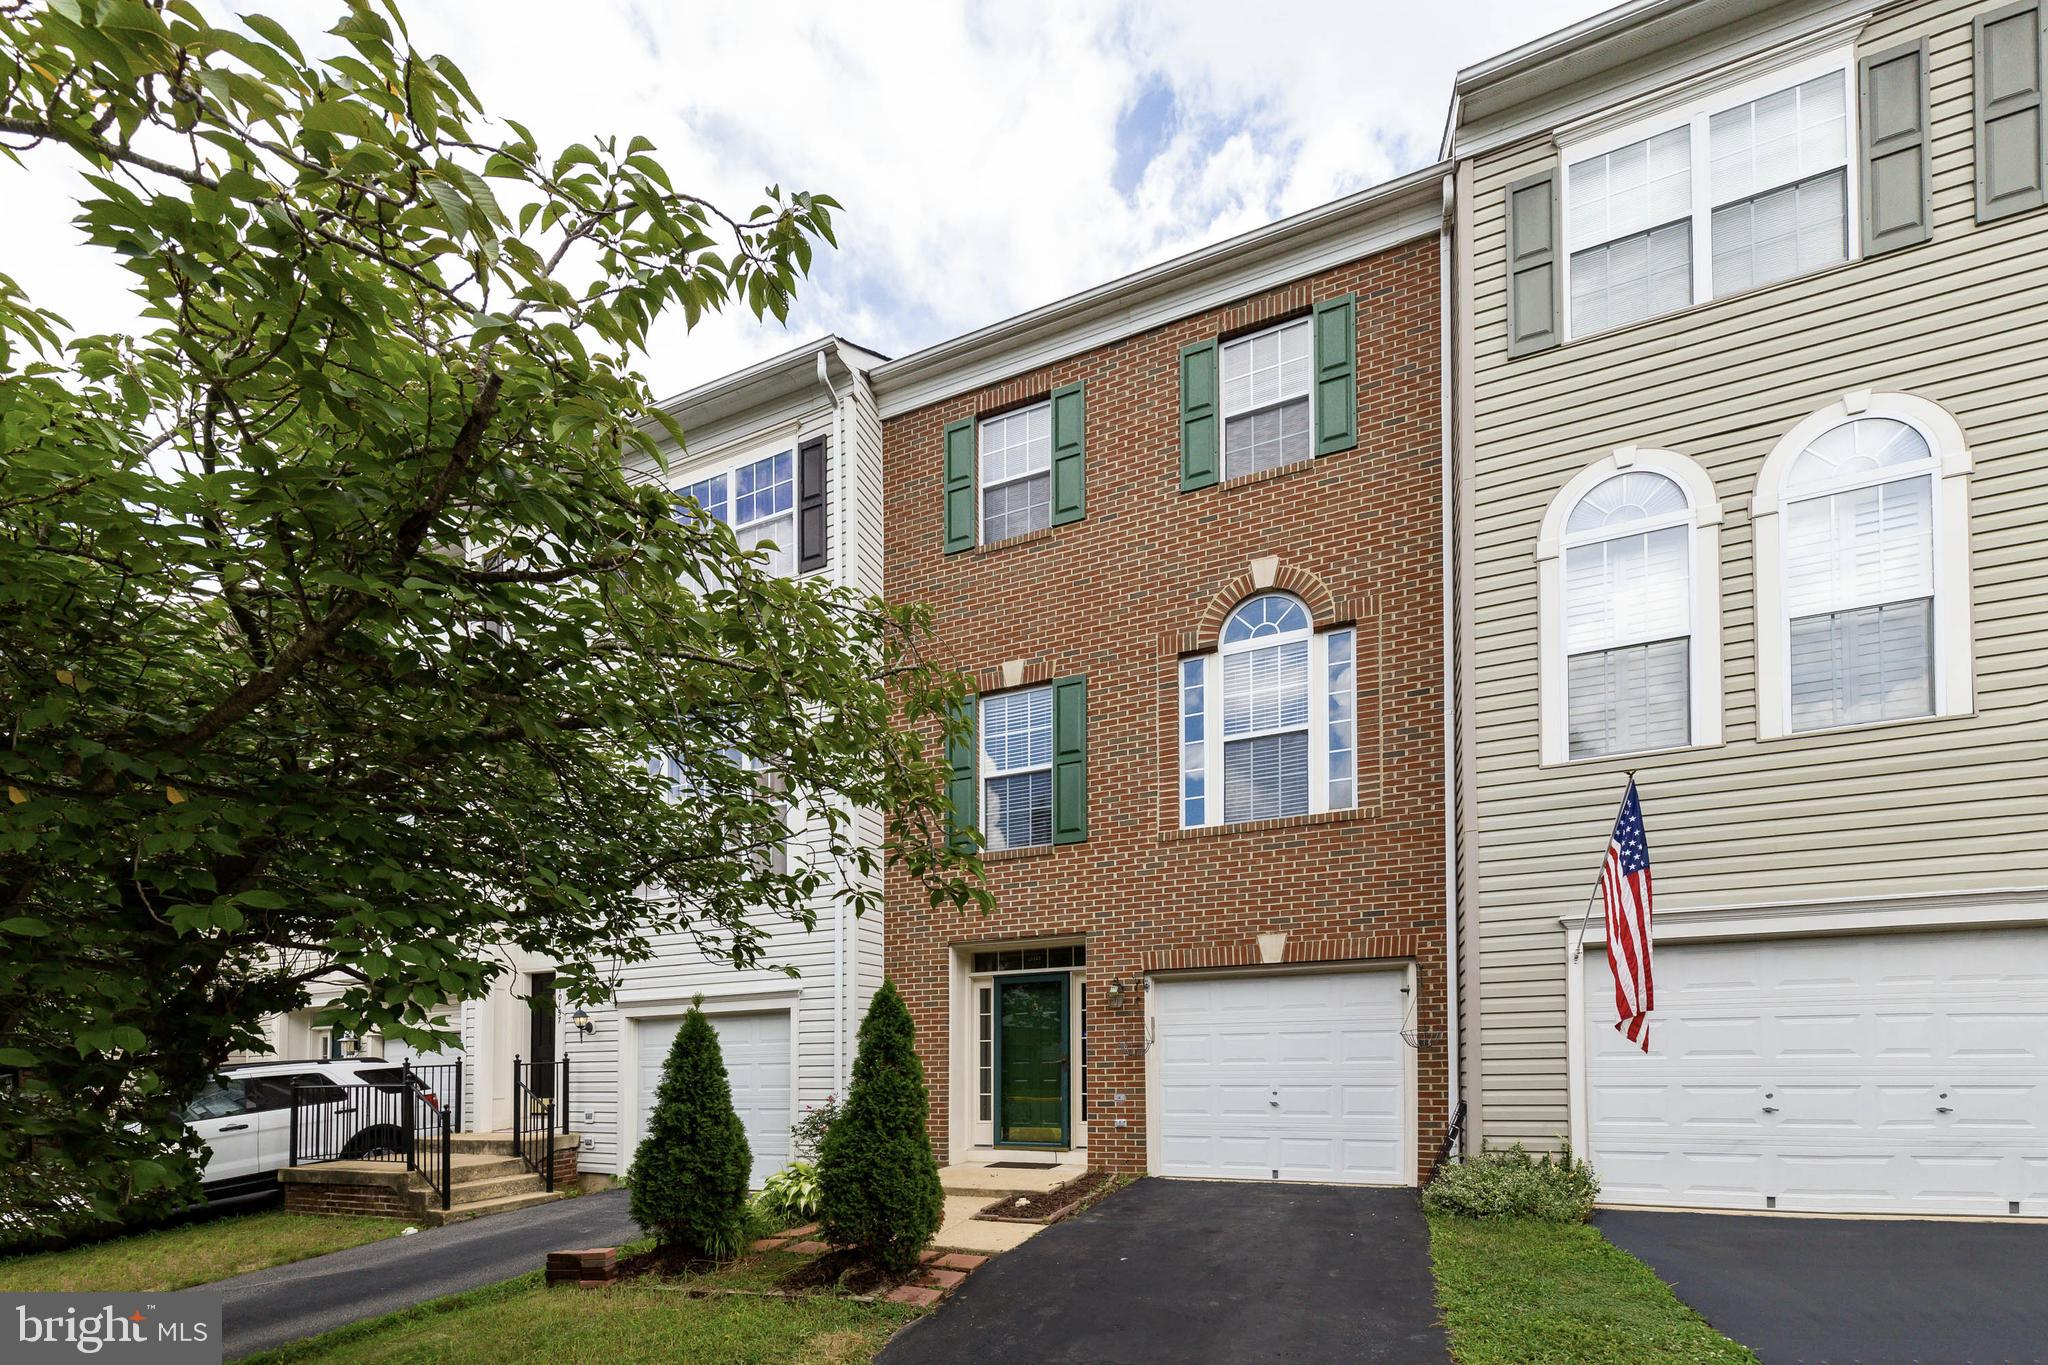 RARELY AVAILABLE TOWNHOME IN SOUGHT AFTER PLANNED COMMUNITY OF BRAEMAR.  OFFERING THE BEST OF BOTH WORLDS, PEACEFUL & QUIET SUBURBAN LIVING EASY ACCESS TO WASHINGINGTON, DC. BRAEMAR OFFERS EASY ACCESS TO 66, 28 & 29 AND PRINCE WILLIAM PARKWAY.  FOR THOSE COMMUTING TO DC, THE VIRIGNIA RAIL EXPRESS IS WITHIN 5 MINUTES & COMMUTER BUS STOPS ARE AVAILABLE THAT SHUTTLE TO THE CRYSTAL CITY, PENTAGON & DC.  NEIGHBORHOOD ZONED FOR PATRIOT HS, MARSTELLER MS & WALKING DISTANCE TO CEDAR POINT ELEMENTARY, ALL BLUE RIBBON SCHOOLS.  SPACIOUS & IMMACULATE BRICK FRONT 1-CAR GAR W/3FINISHED LEVELS*GLISTENING HARDWOOD FLOORS & FRESH PAINT*3 LEVEL BUMP-OUT*INVITING FOYER*GENEROUS REC RM LEADS TO CUSTOM REAR DECK BACKS TO WOODS*EXPANSIVE LR/DR*BRIGHT KIT W ISLAND & NEW SS APPLIANCES*SUN FILLED FR W/CROWN MOLDING*MASTER SUITE WALK IN CLOSET*LUXURY MASTER BA W/GARDEN TUB SEP SHOWER*NEAR GAINESVILLE PROMENADE, REGAL MULTIMPLEX, HYLTON PERFORMING ARTS & FREEDOM AQUATIC CENTER.